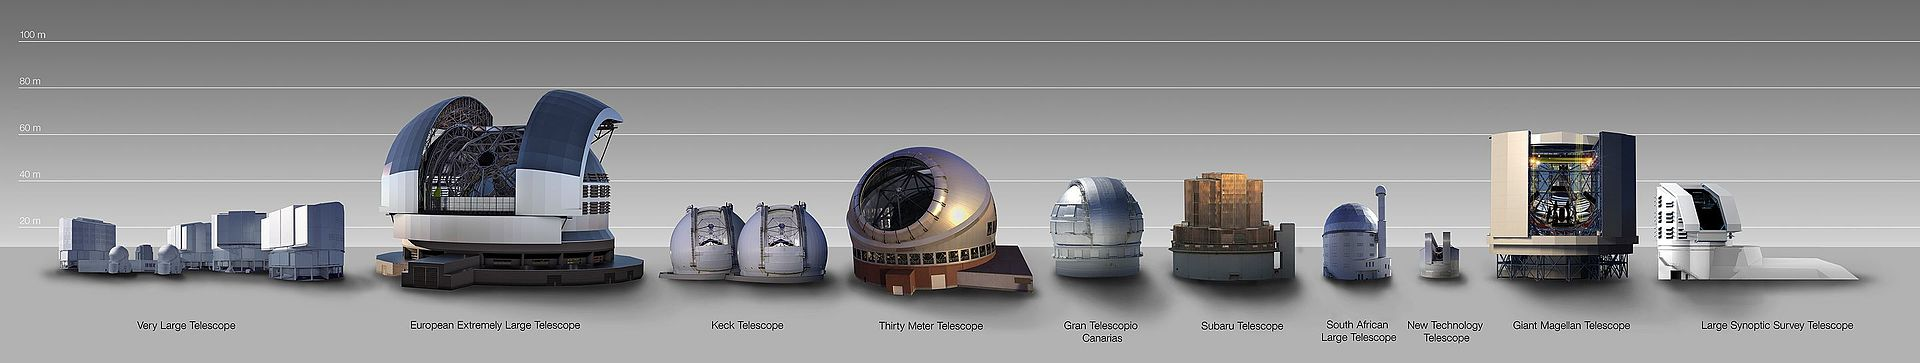 size_comparison_between_the_e-elt_and_other_telescope_domes.jpg